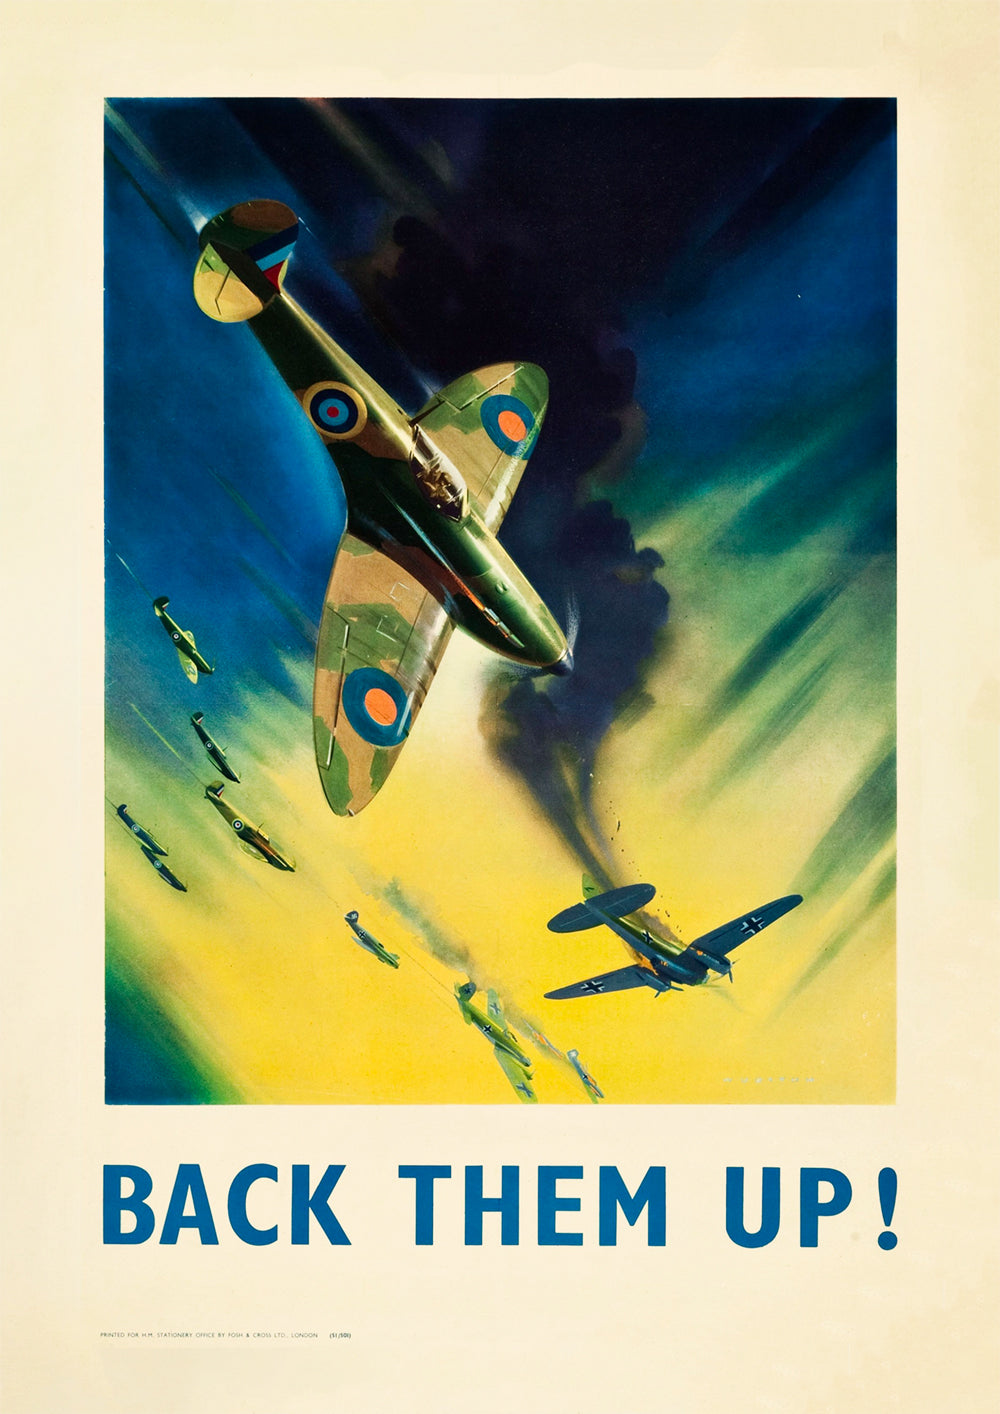 Back them up! – British Word War Two poster